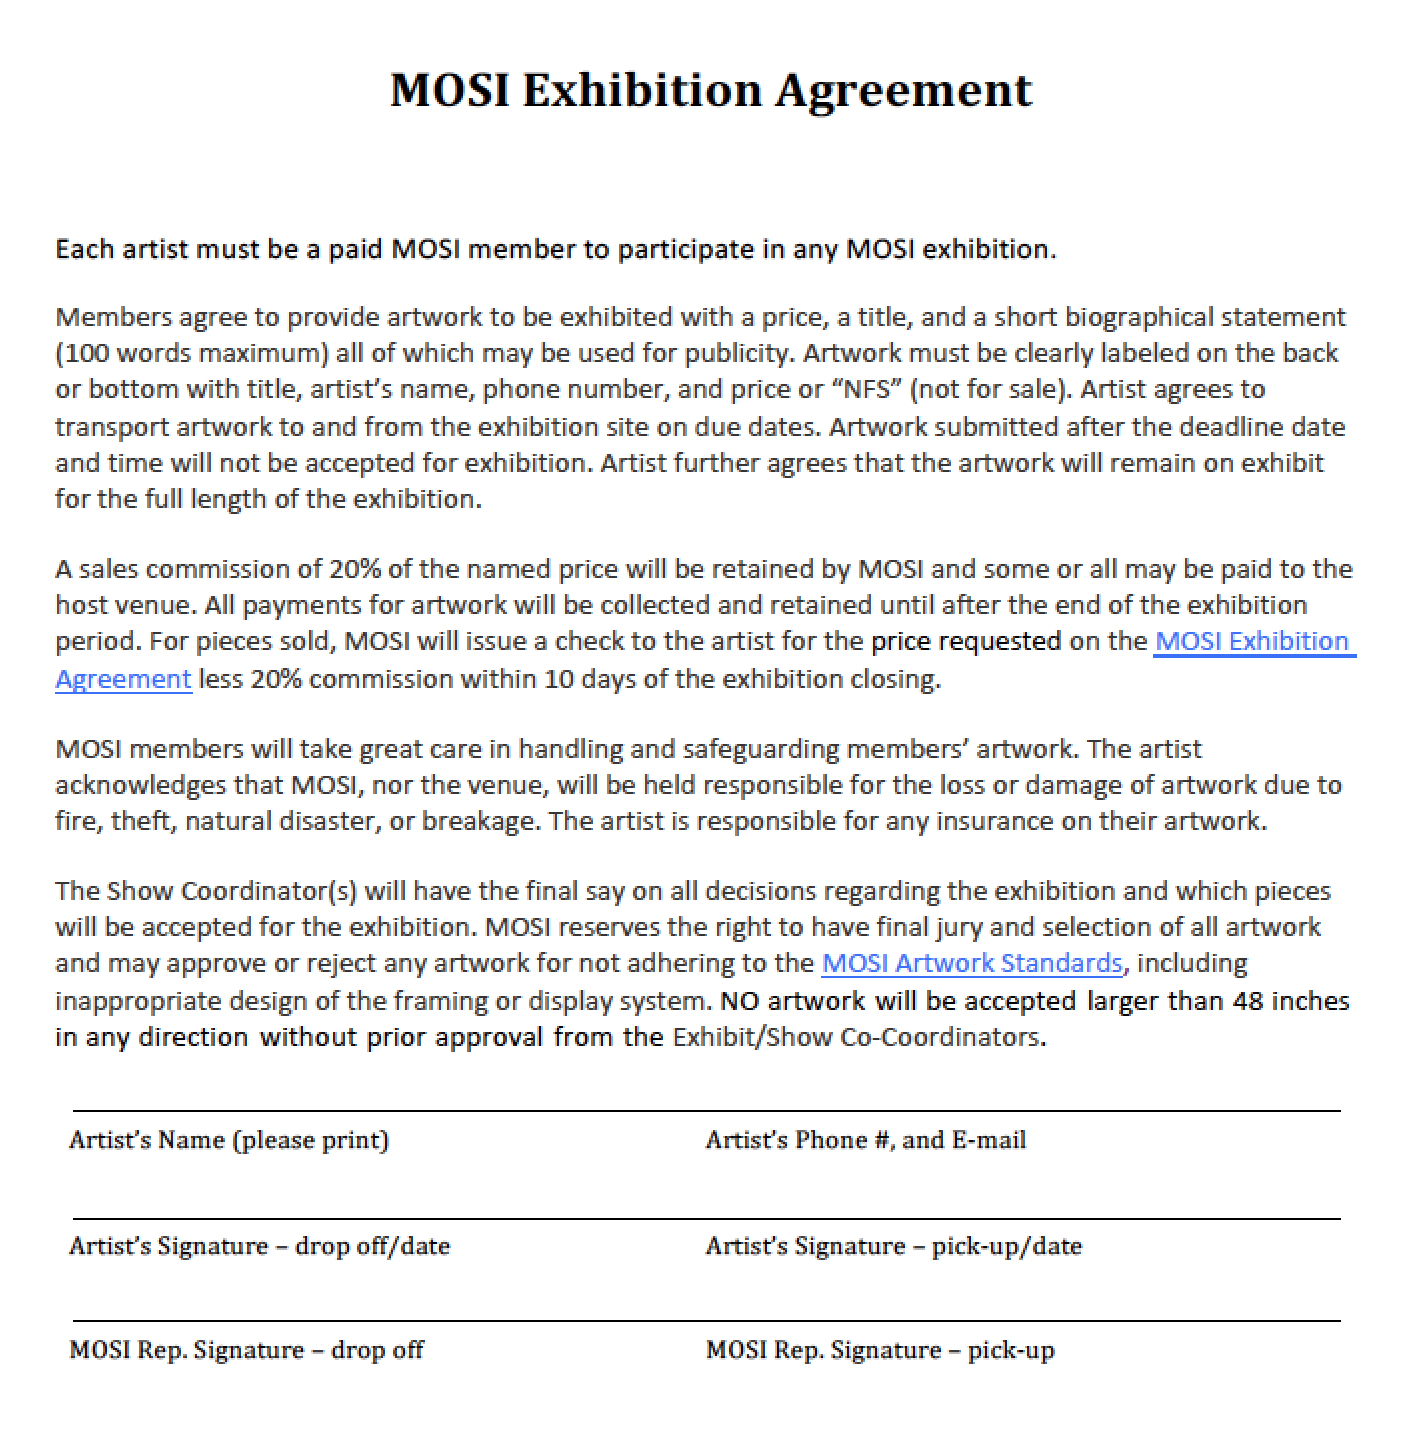 mosi-exhibition-agreement